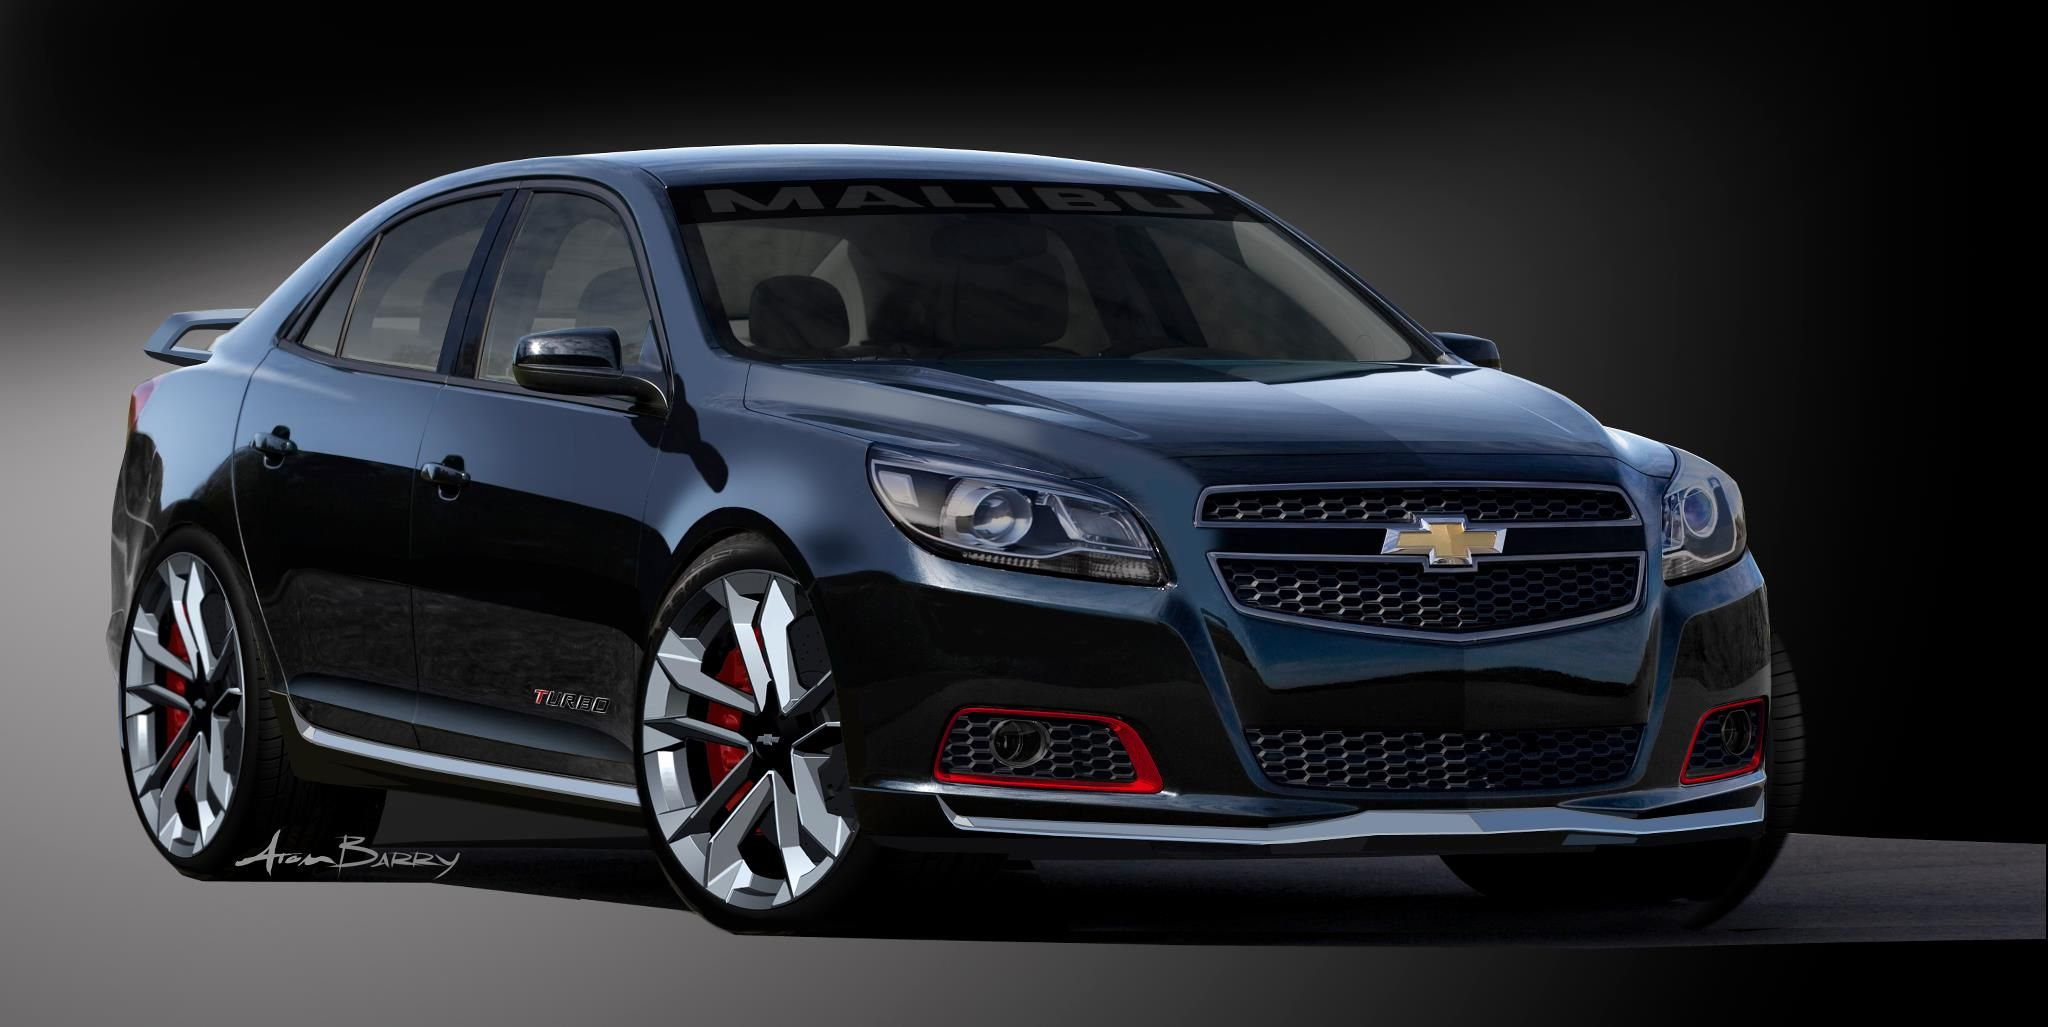 2013 Chevrolet Malibu Turbo Concept Car Chevrolet Malibu